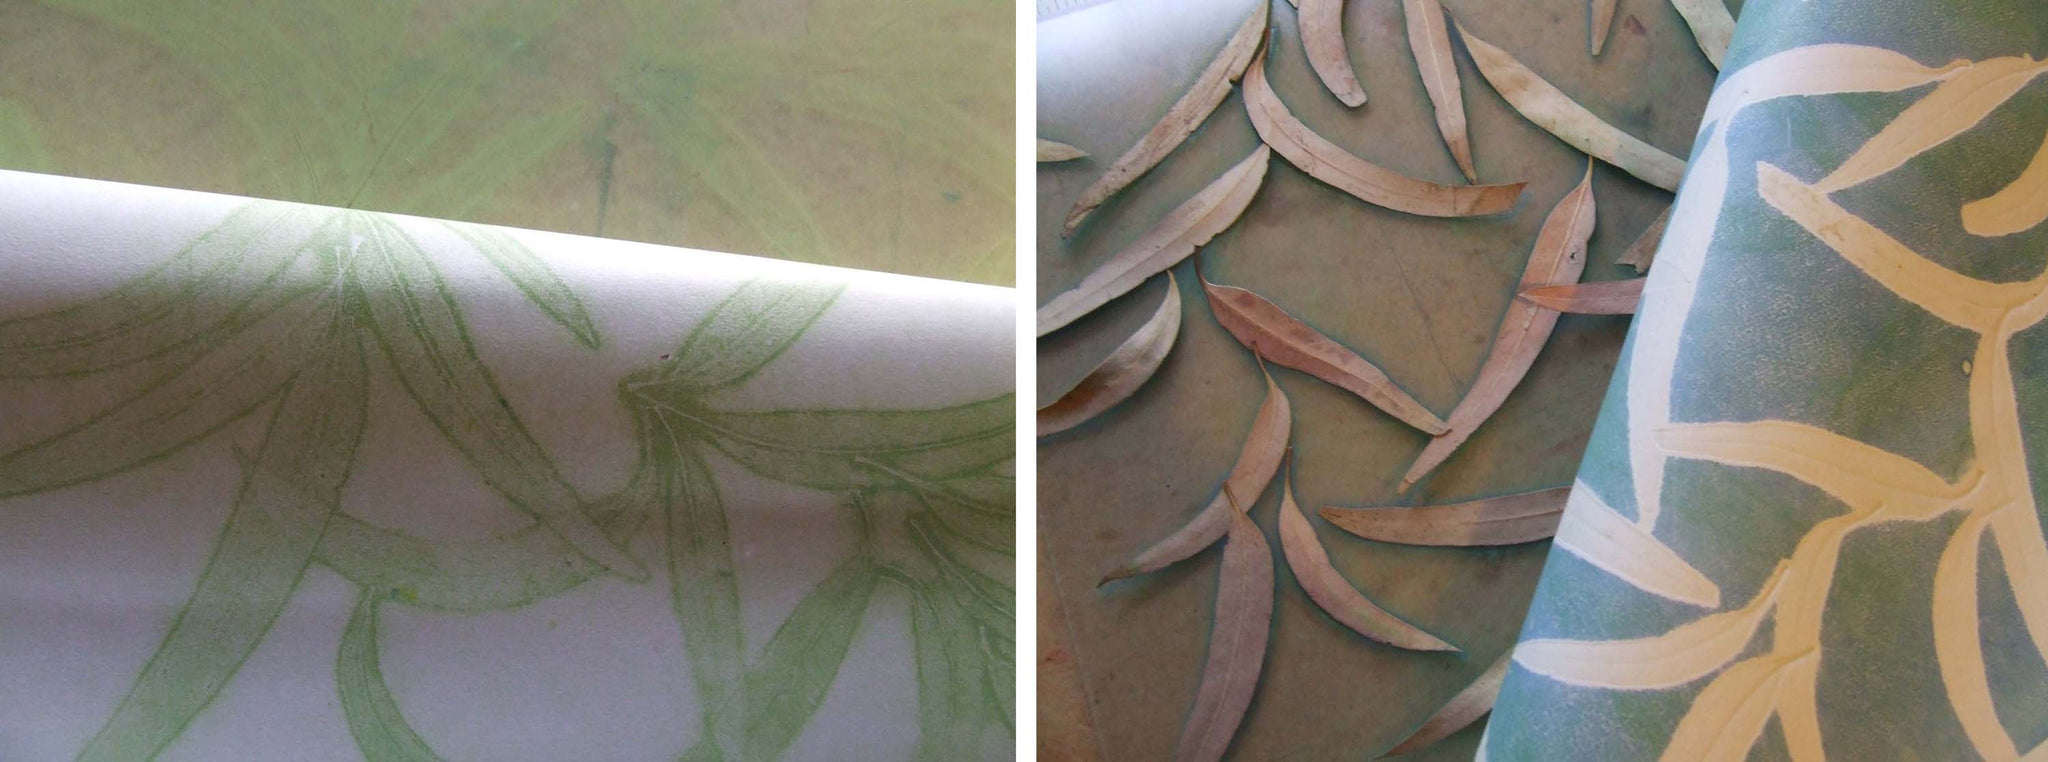 Taking ghost prints of leaves